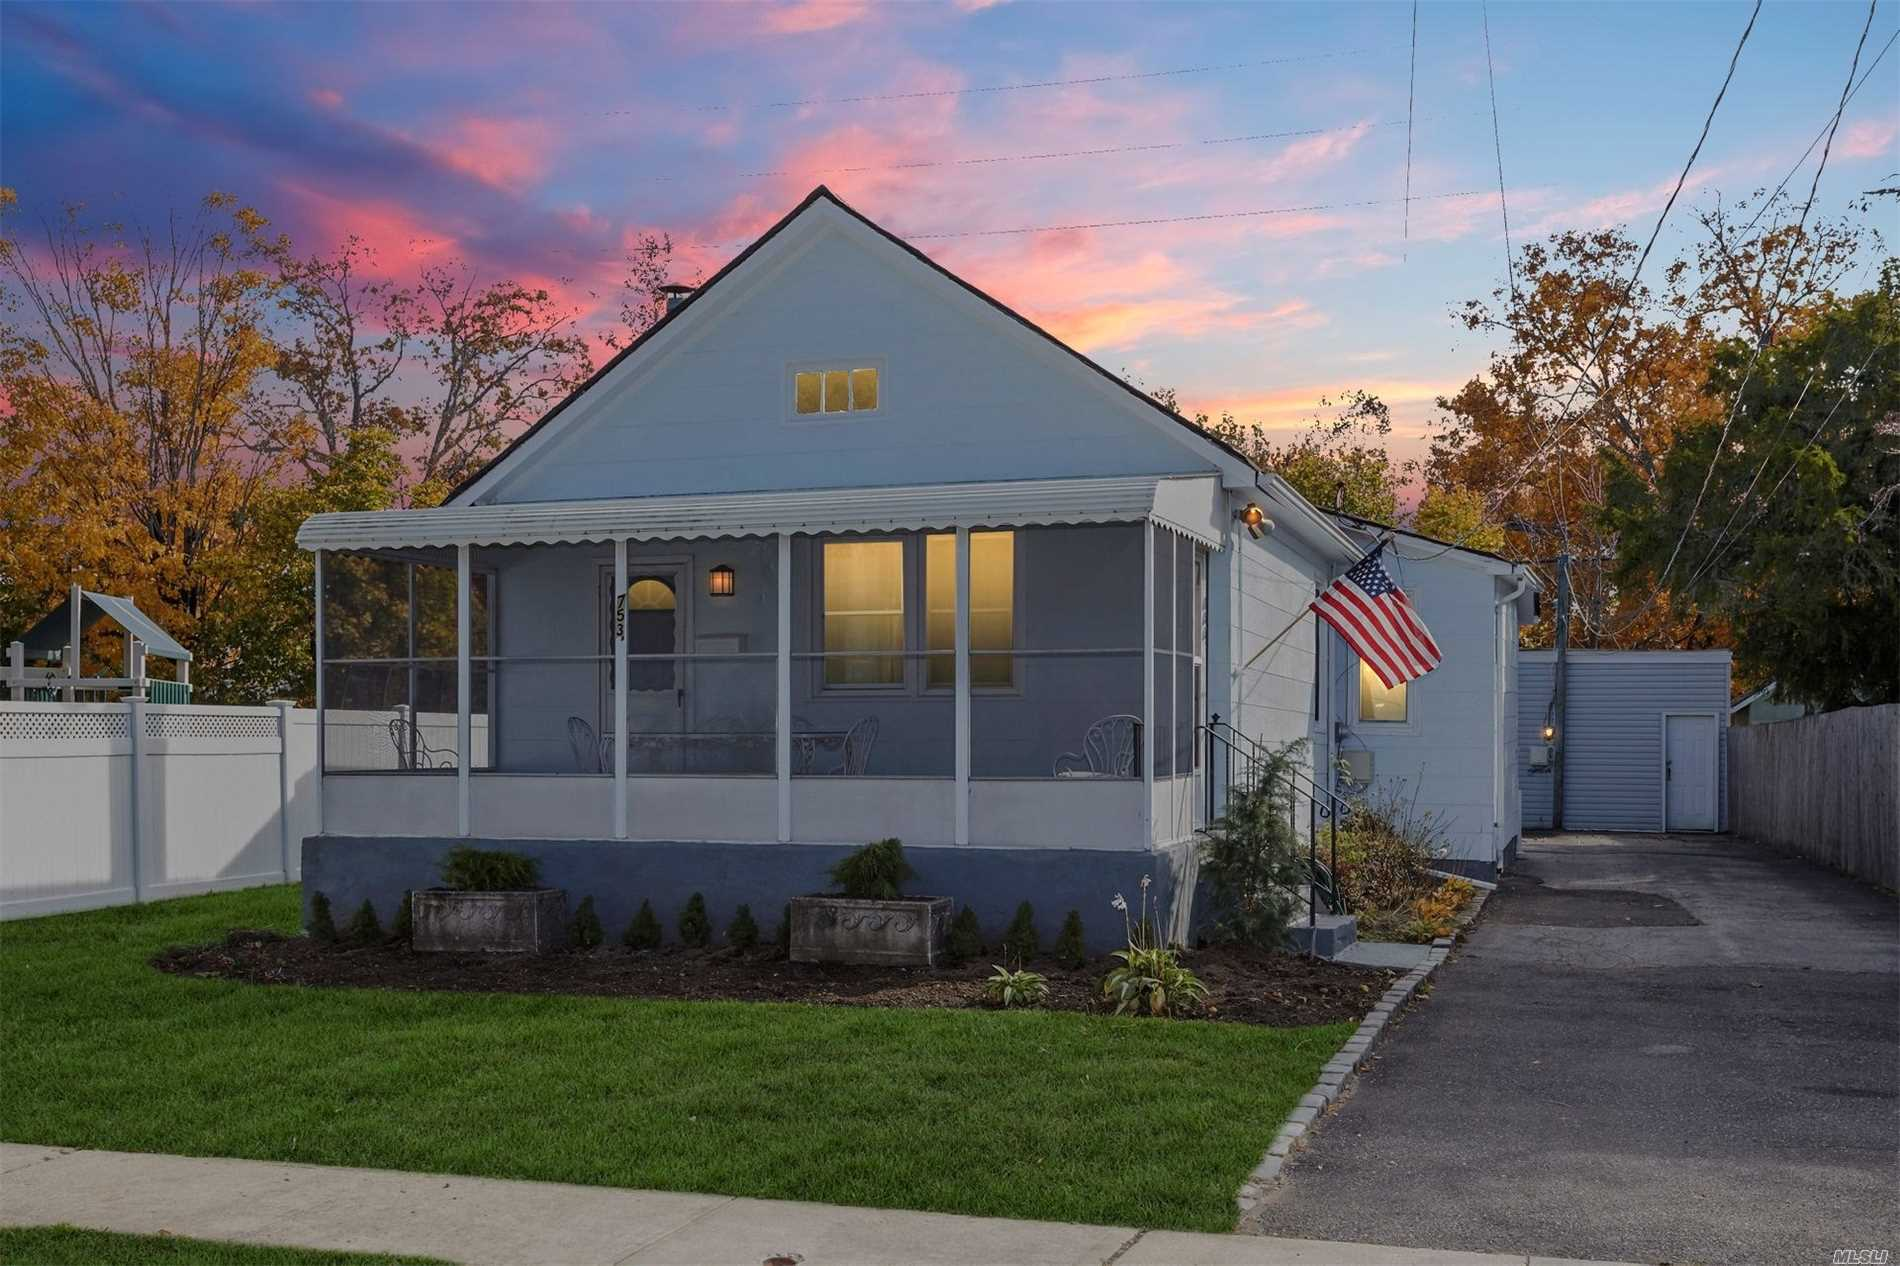 753 Althouse St - Woodmere, New York